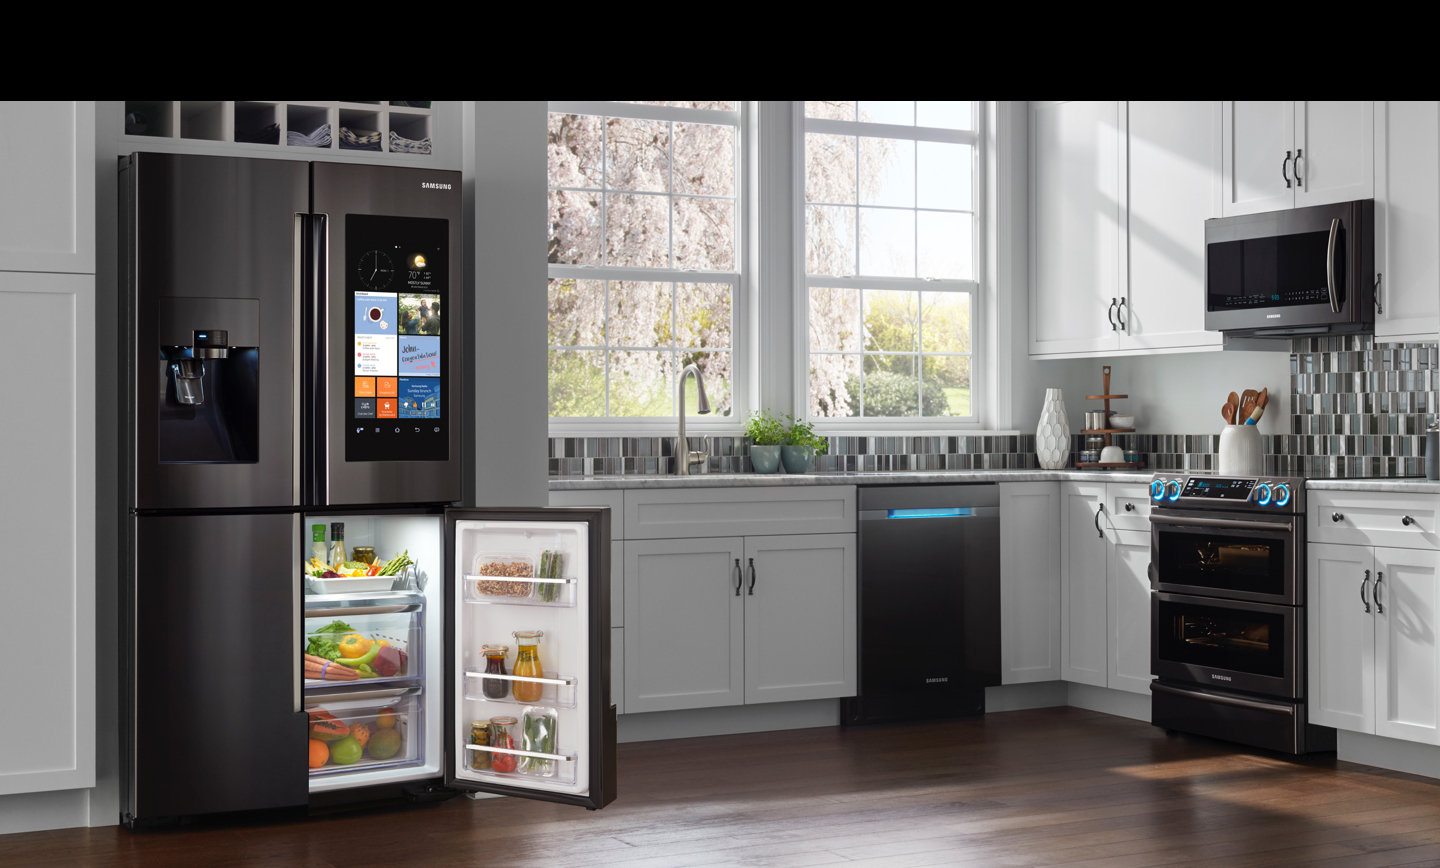 Best Kitchen Appliances best kitchen home design ideas elegant best kitchen Kitchen Appliance Trends Appliance Color Trends